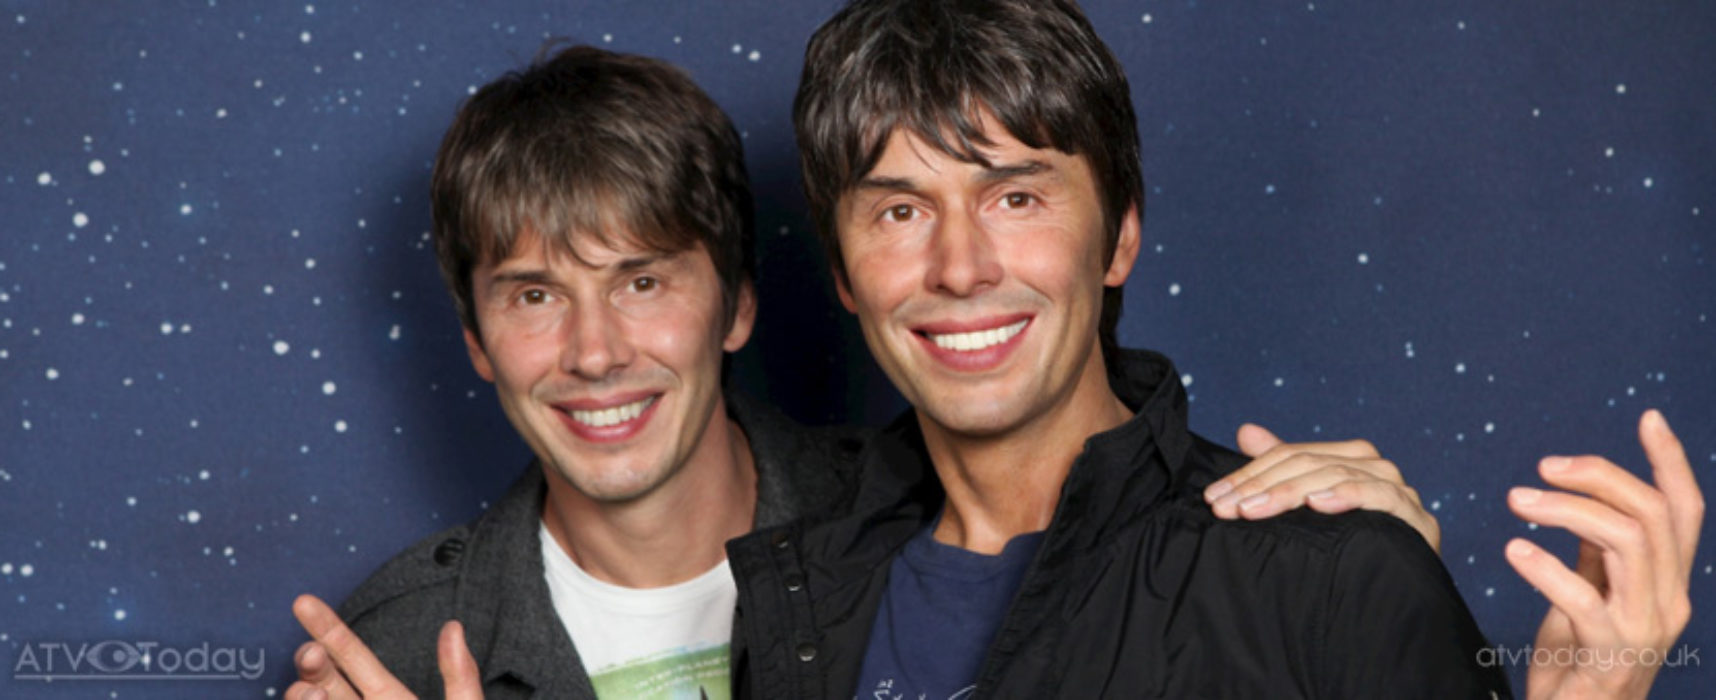 Professor Brian Cox gets waxwork and 3D hologram at Madame Tussauds Blackpool